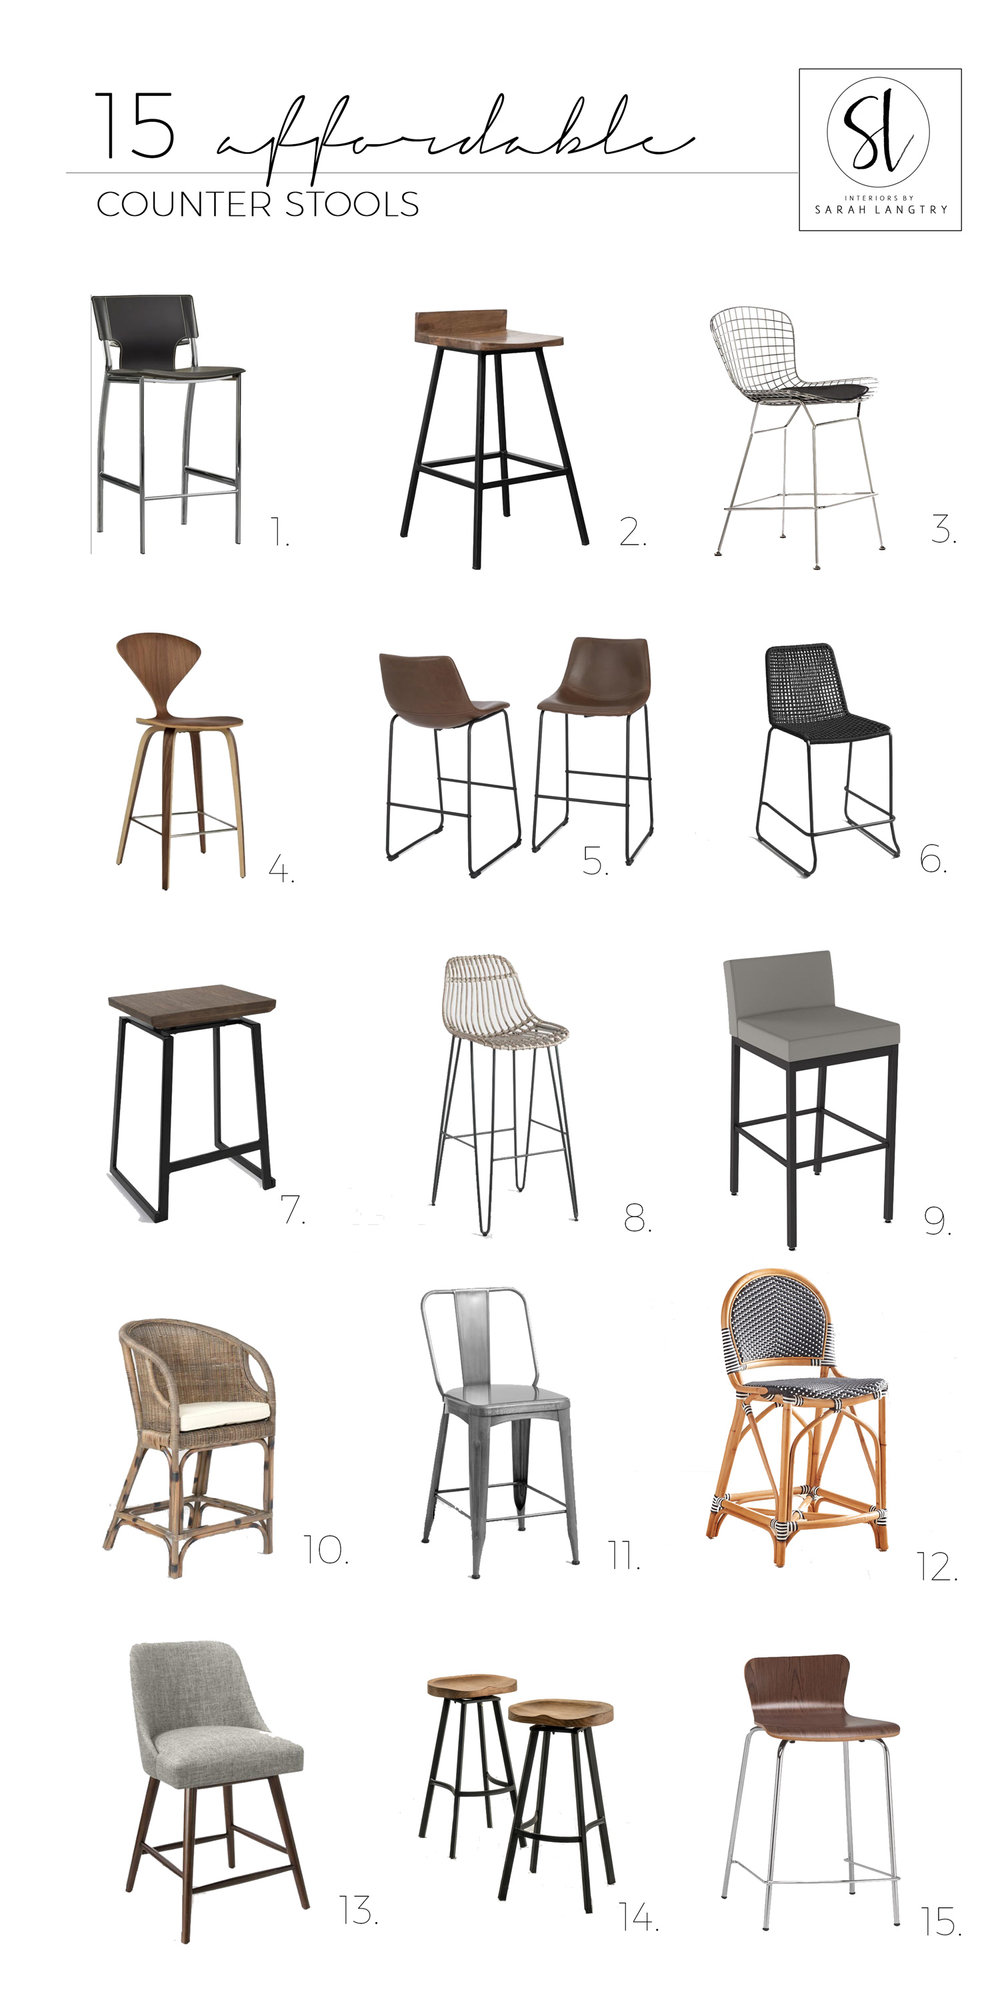 15 Affordable counter stools - so many great options!